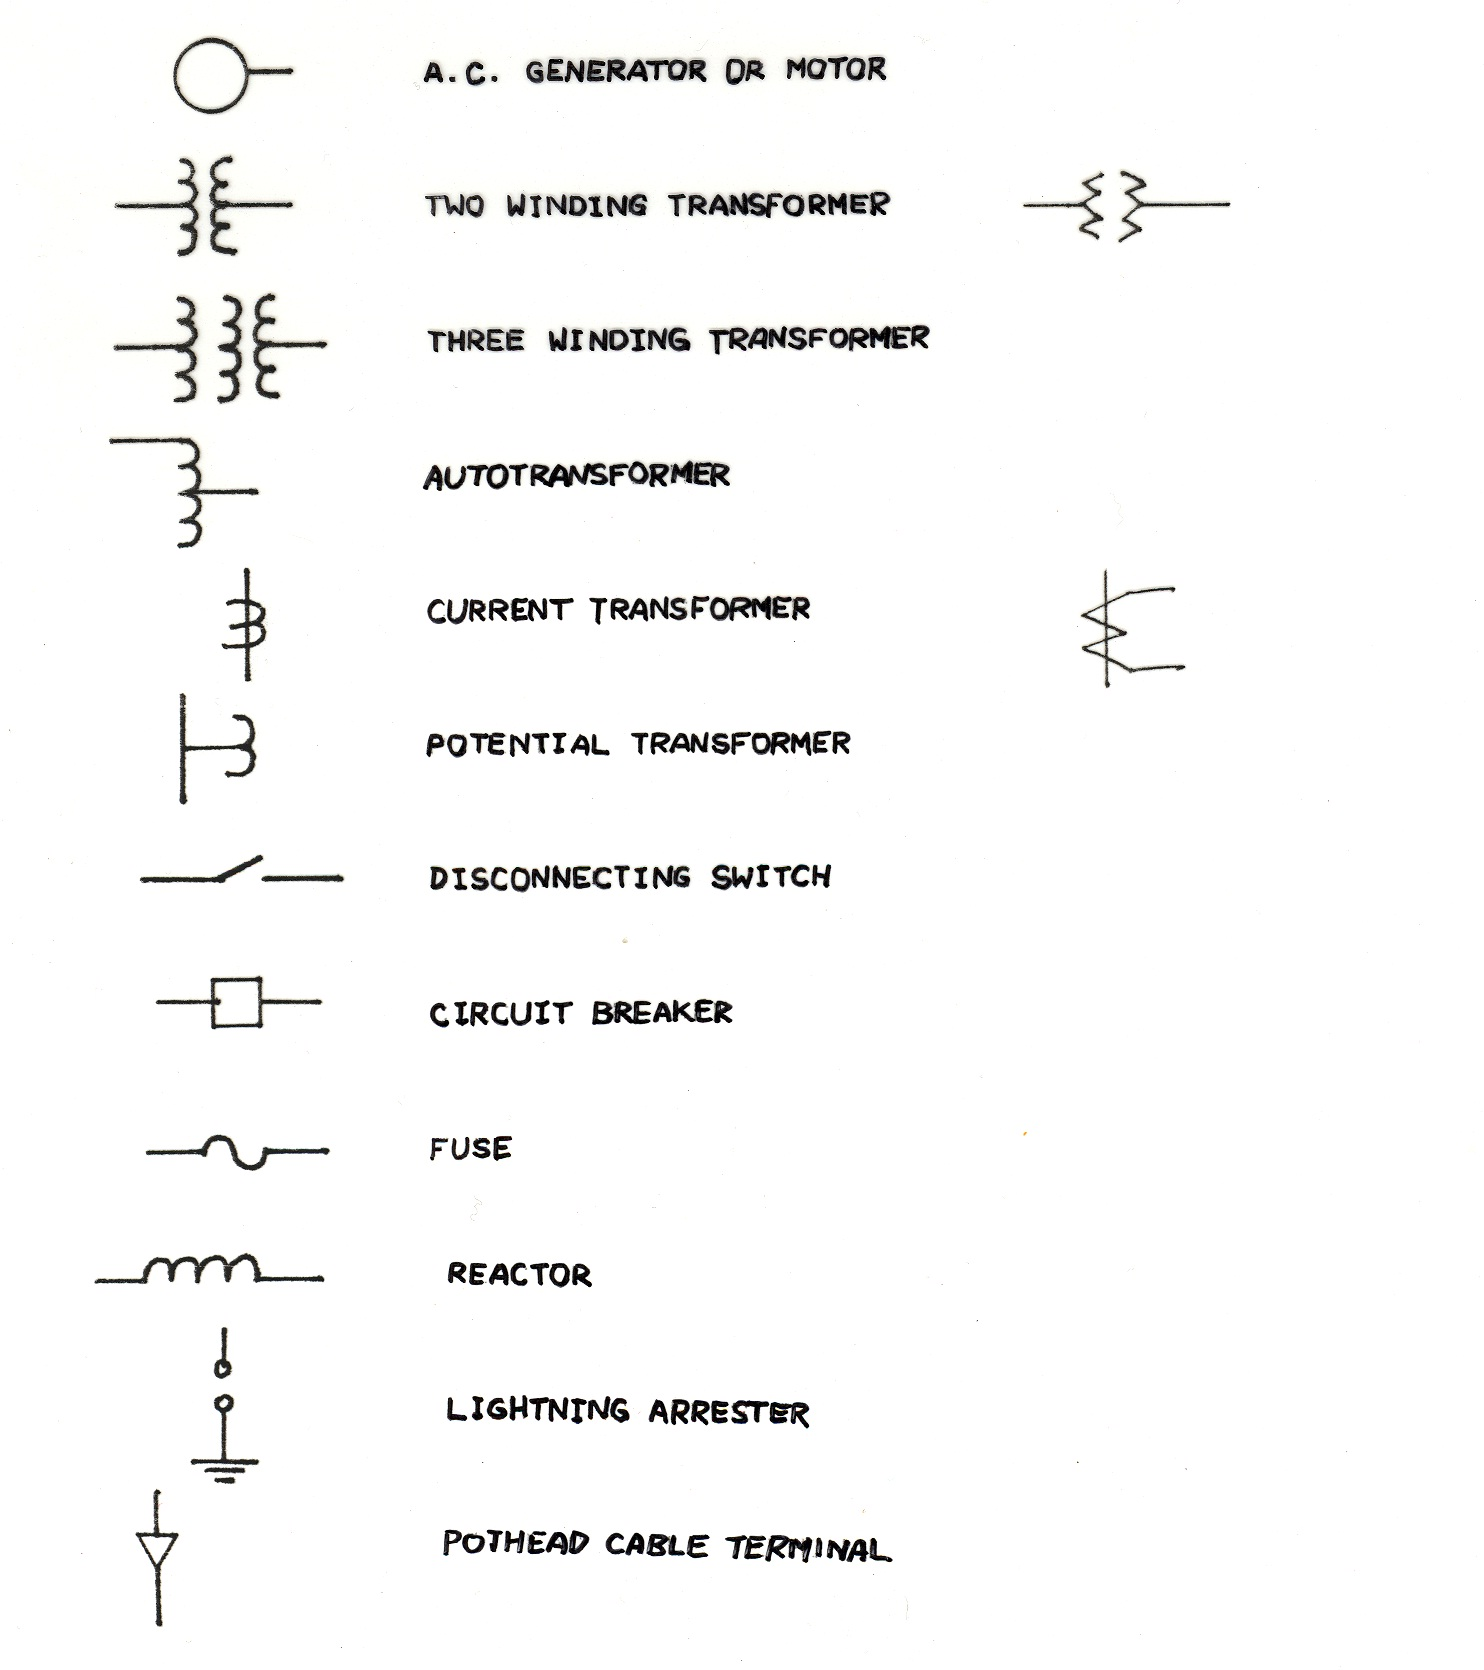 hight resolution of single line diagram legend wiring diagram option standard electrical one line diagram symbols one line electrical diagram symbols